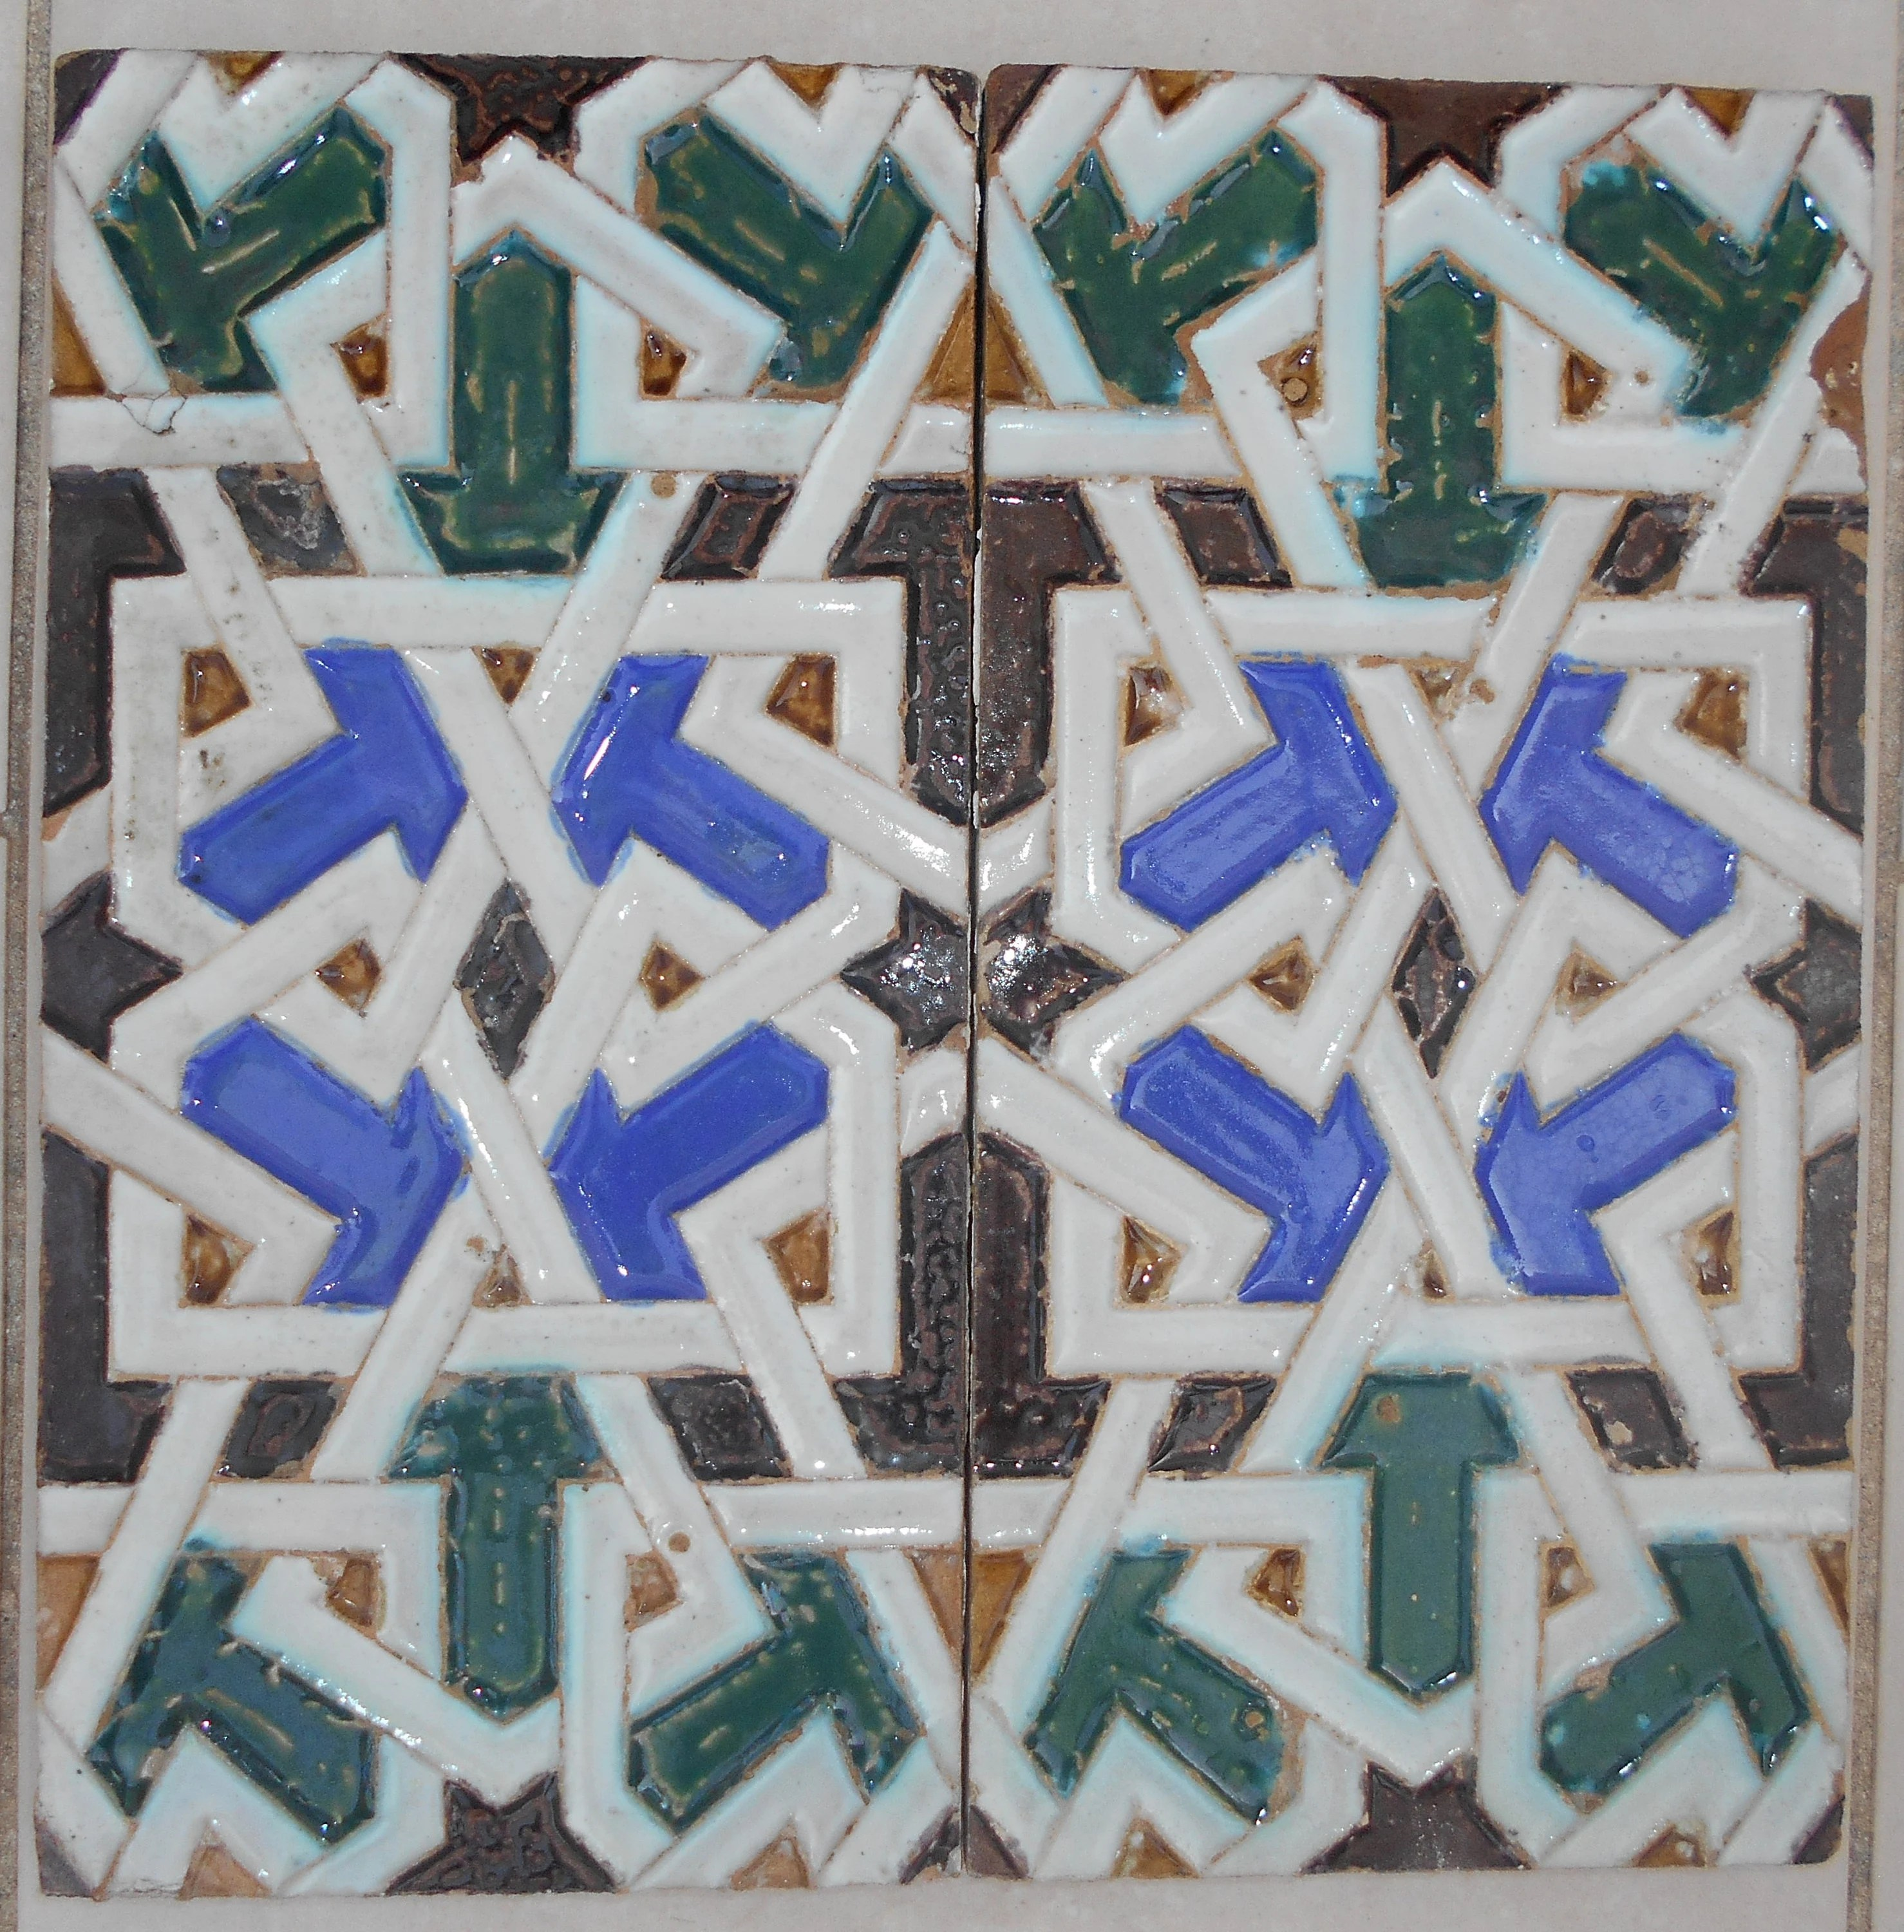 Azulejos Sevilla Pair 2 Azulejos Tiles Antique Spain 19th Century Seville Sevilla Spain Antique Spanish Tiles